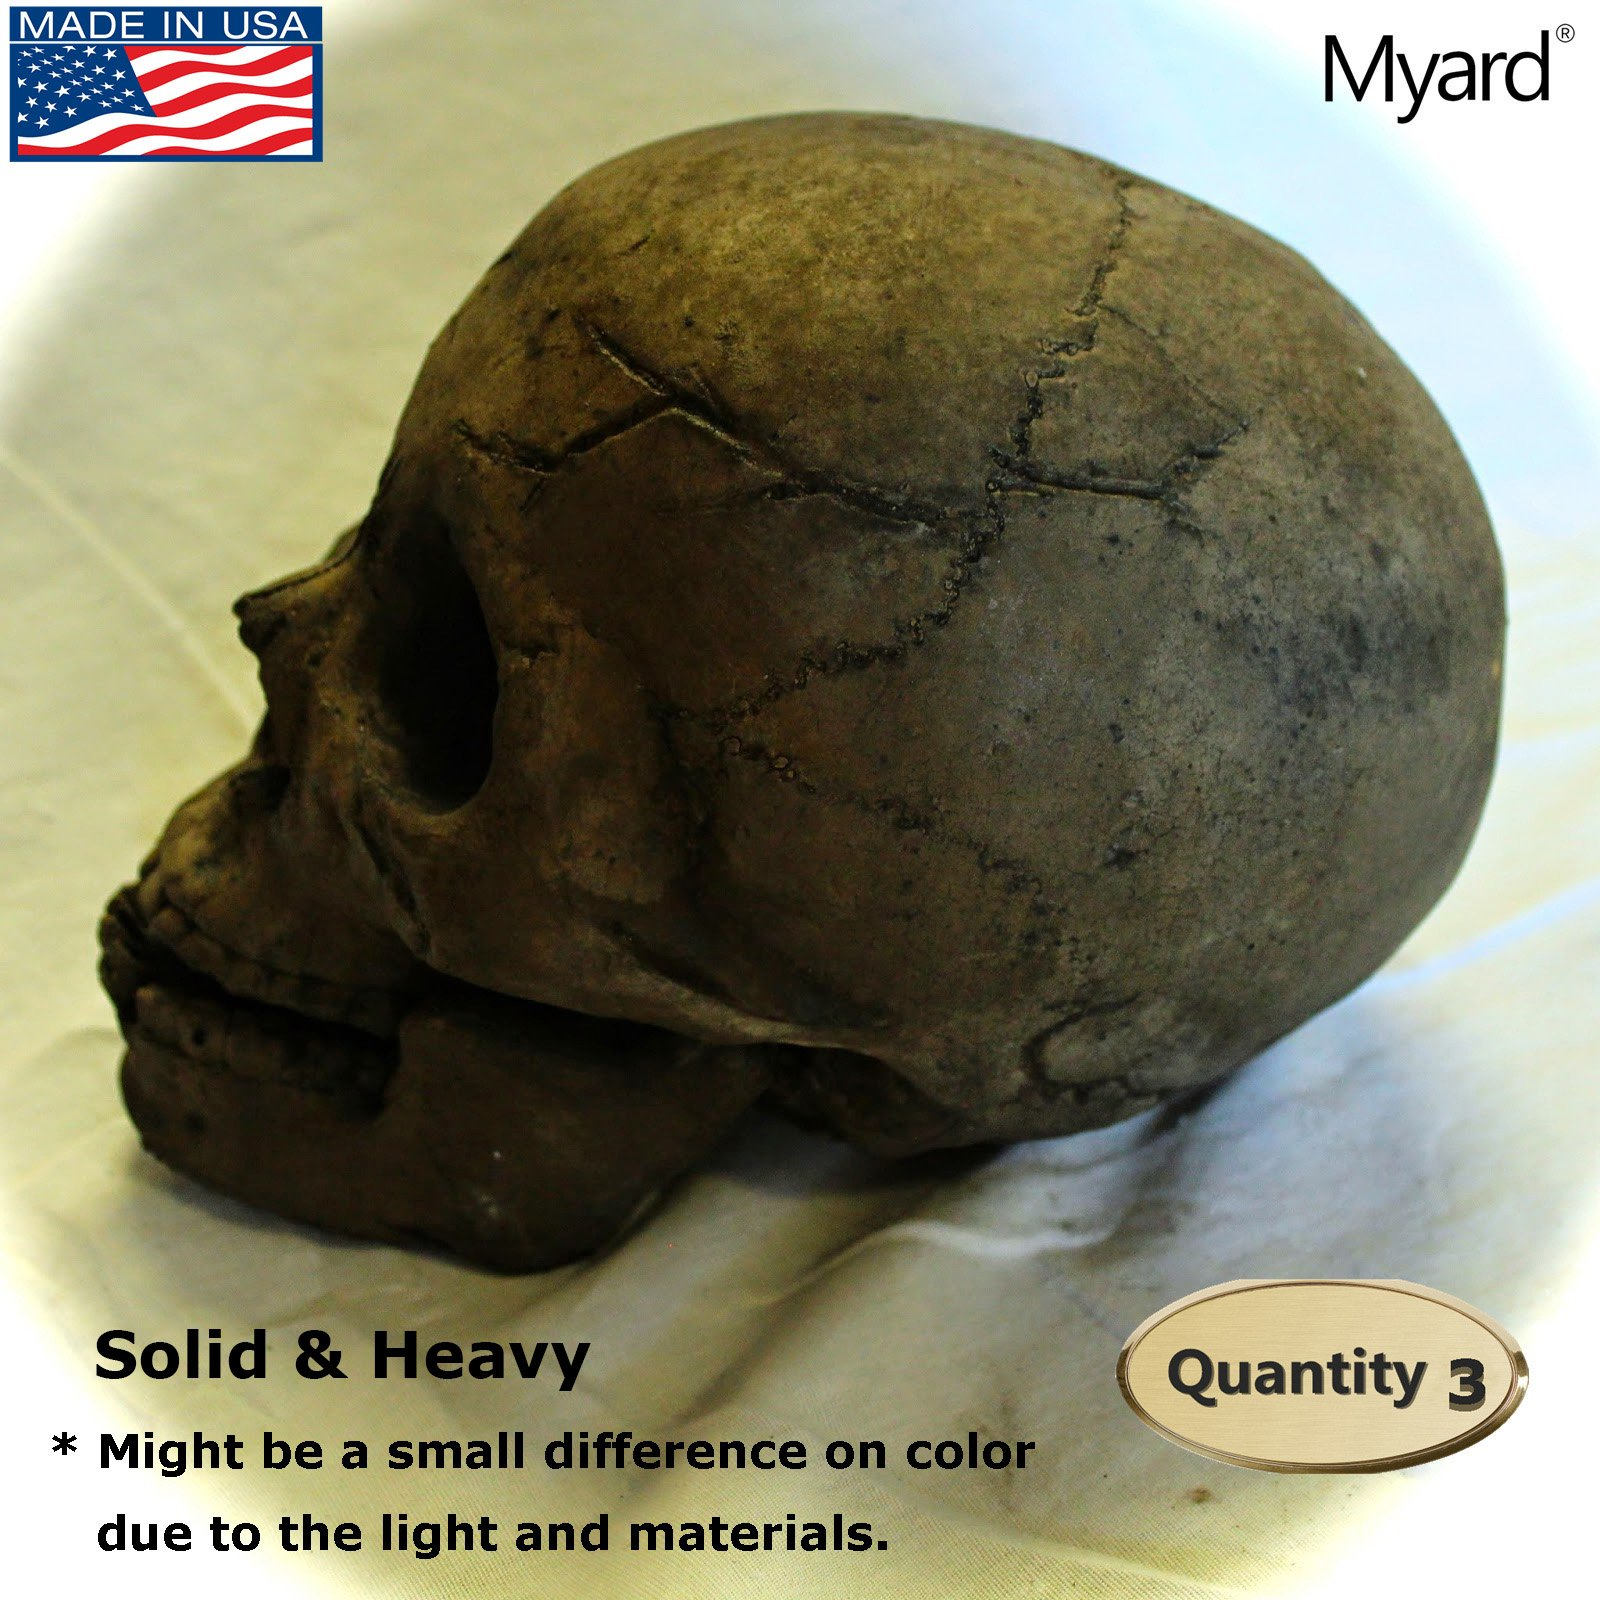 Myard DELUXE Log - Imitated Human Skull Fire Gas Log for Natural Gas / Liquid Propane / Wood Fire Fireplace & Fire Pit Halloween (Qty 3, Brown)